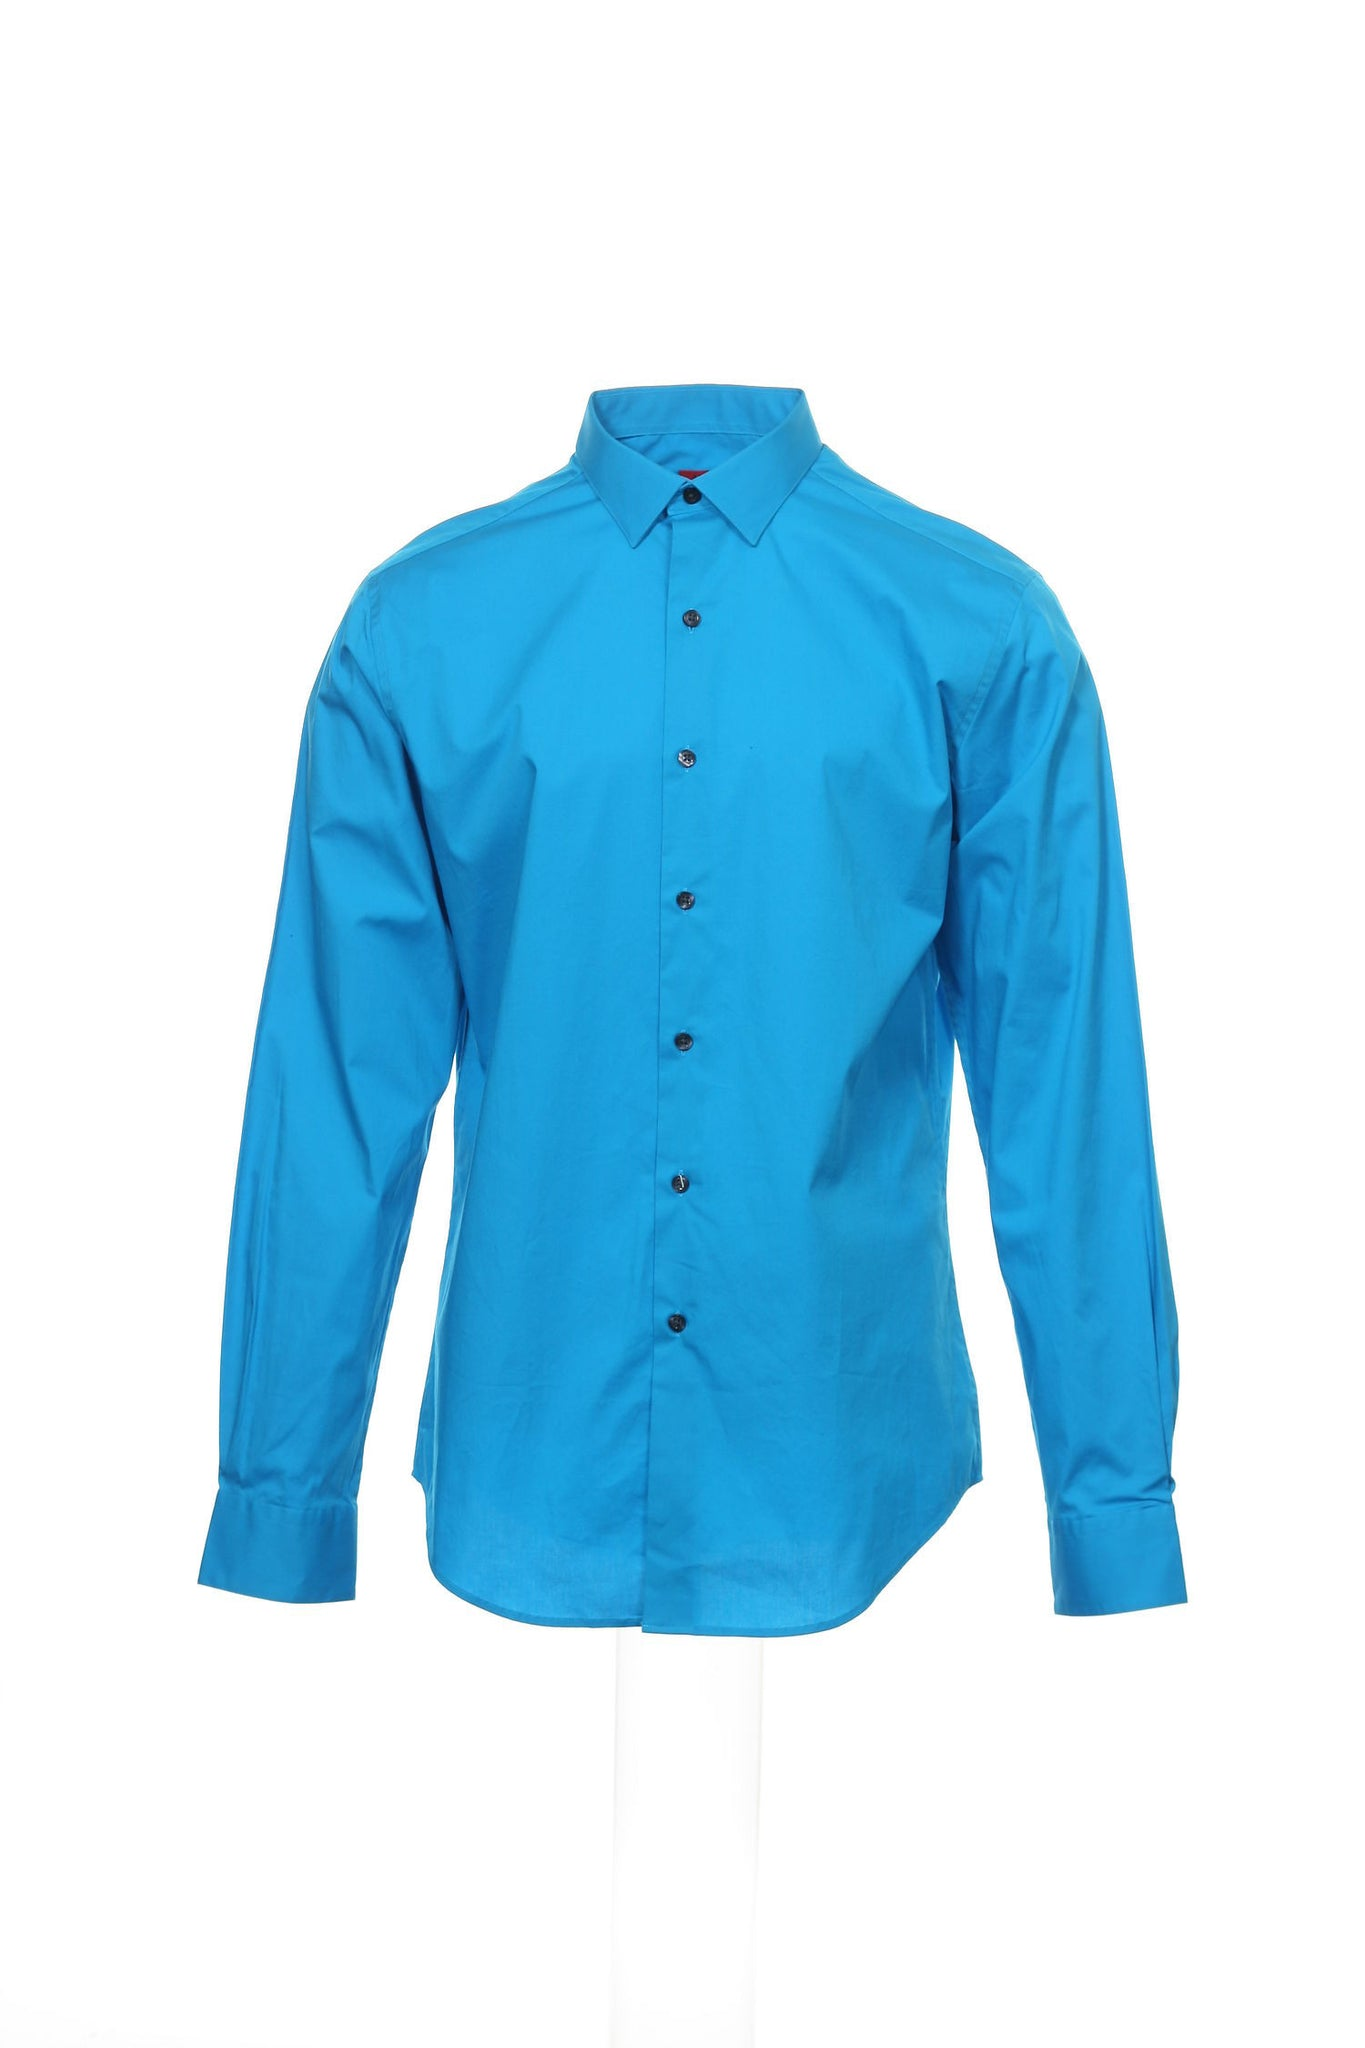 SLIM FIT by Alfani Mens Blue Button Down Shirt